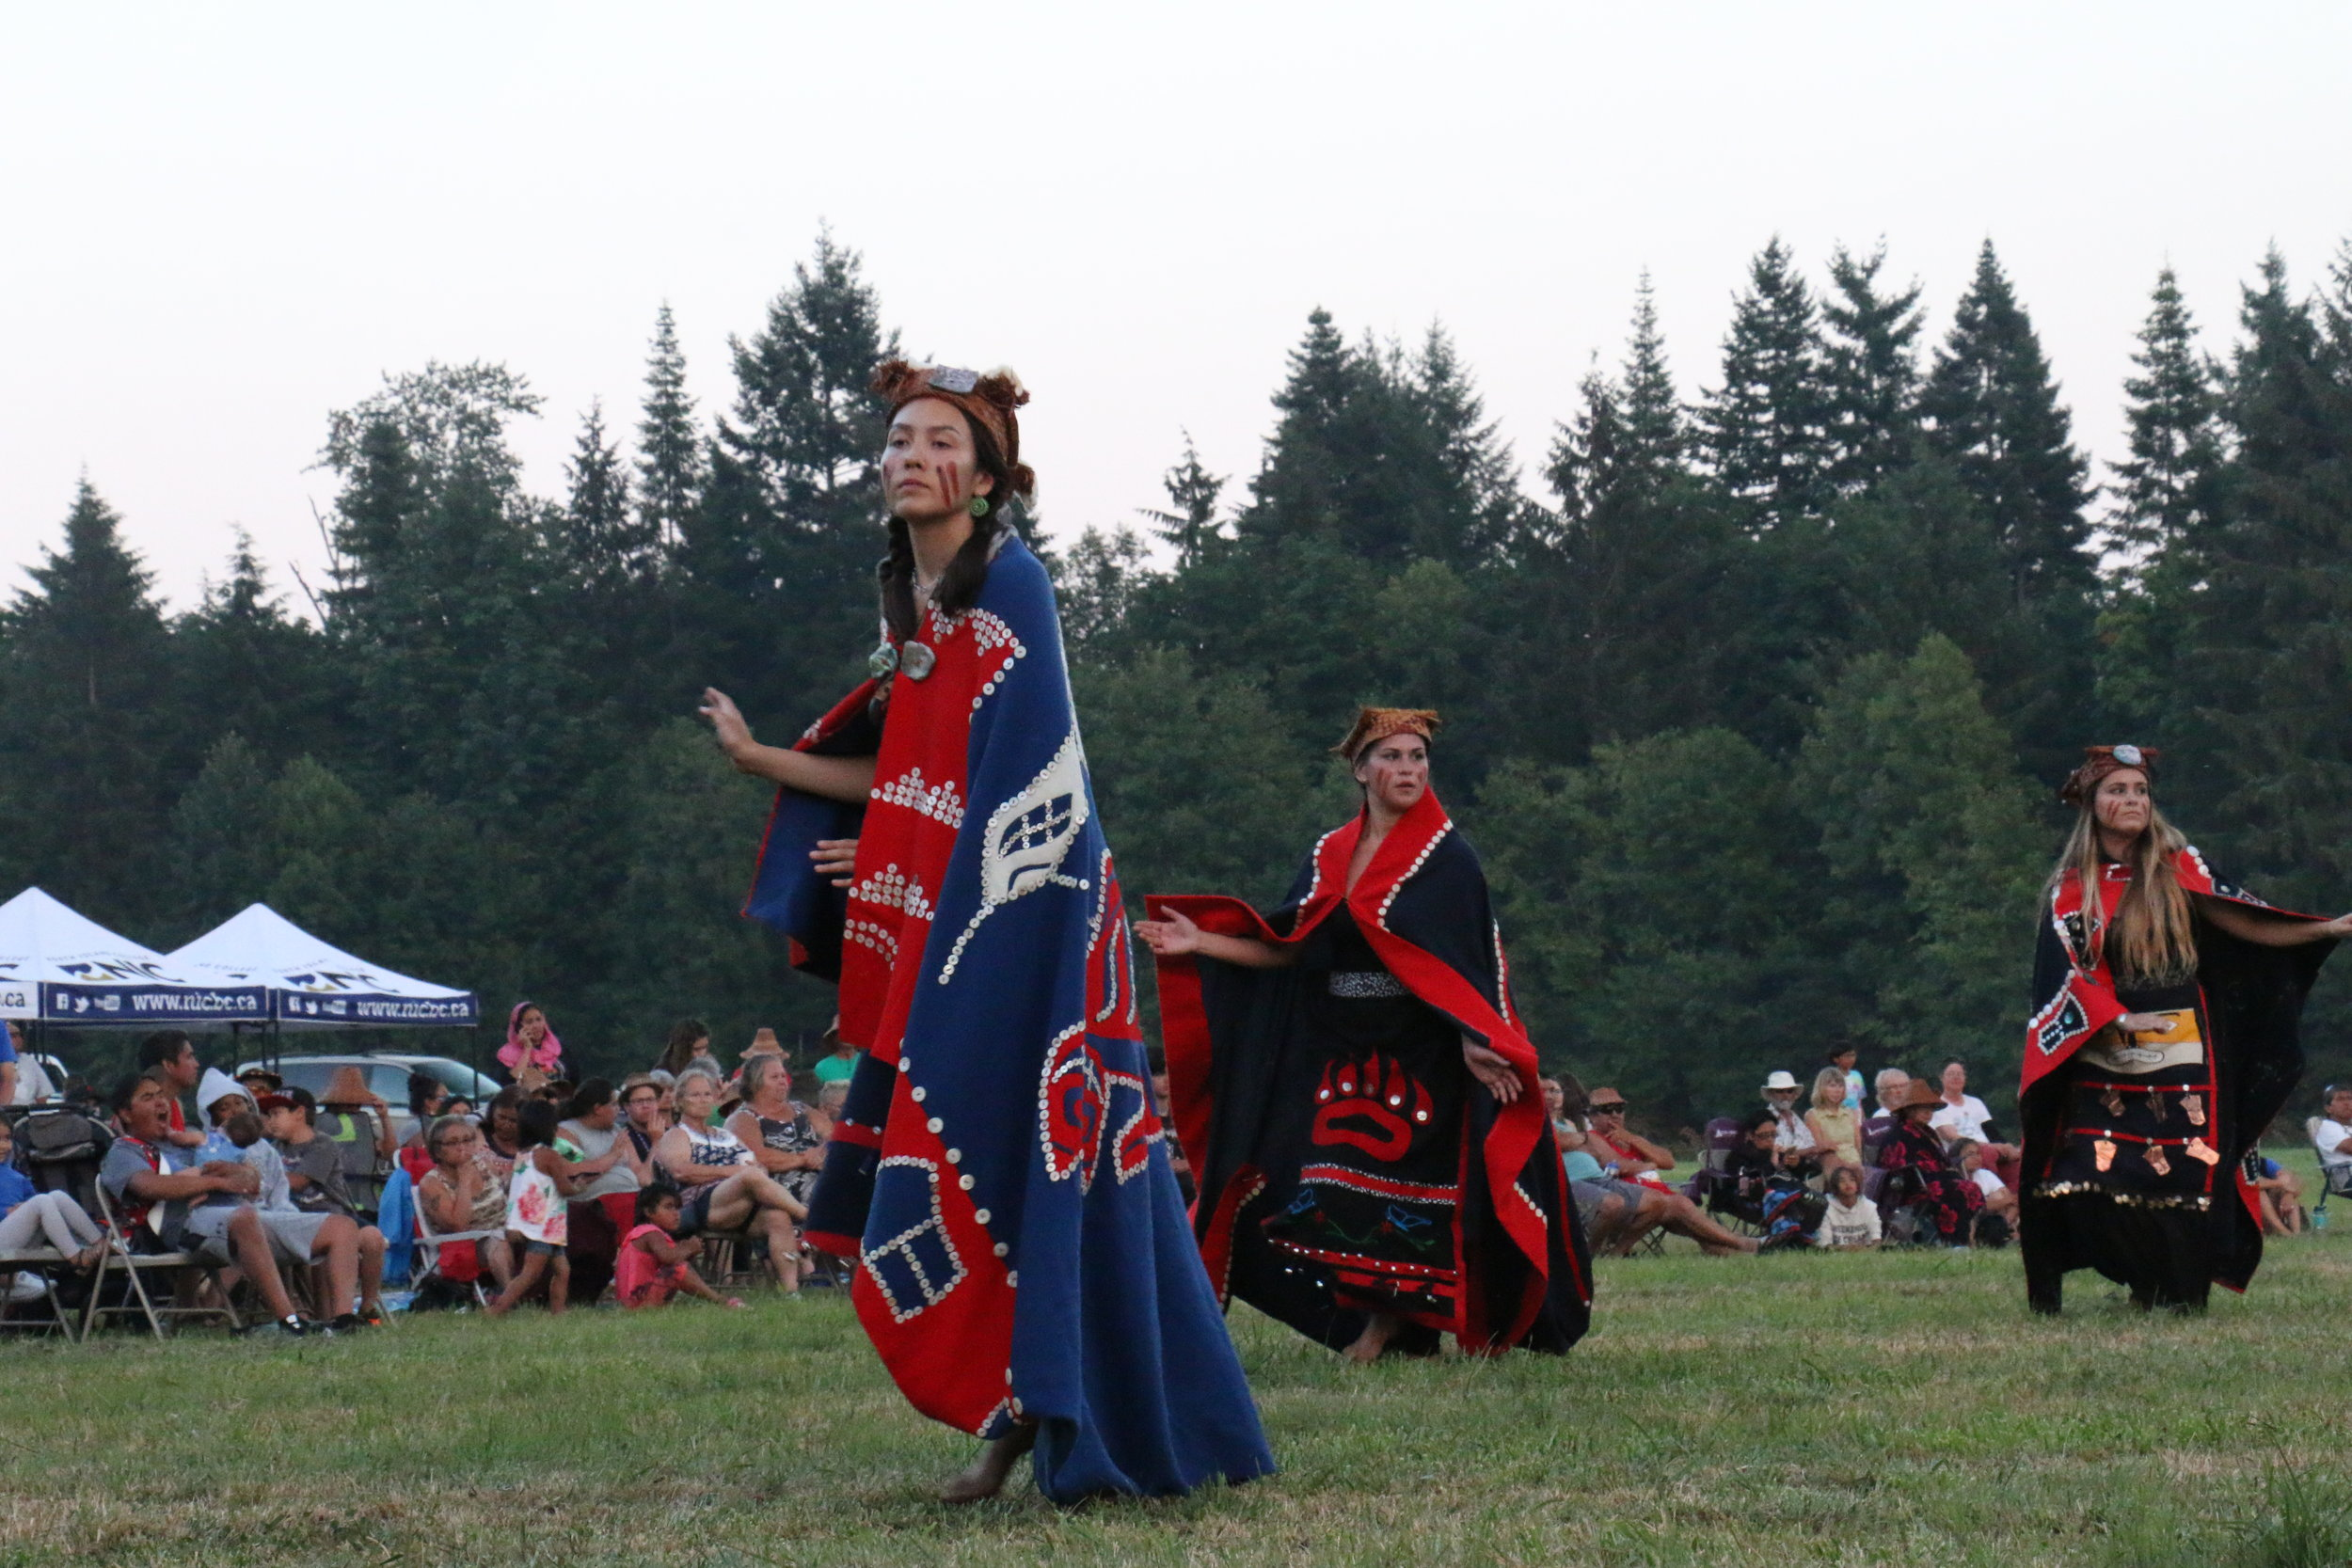 Dancers from K'omoks perform for guests on the grounds of the historic Puntledge Indian reserve. (Julian Brave NoiseCat )